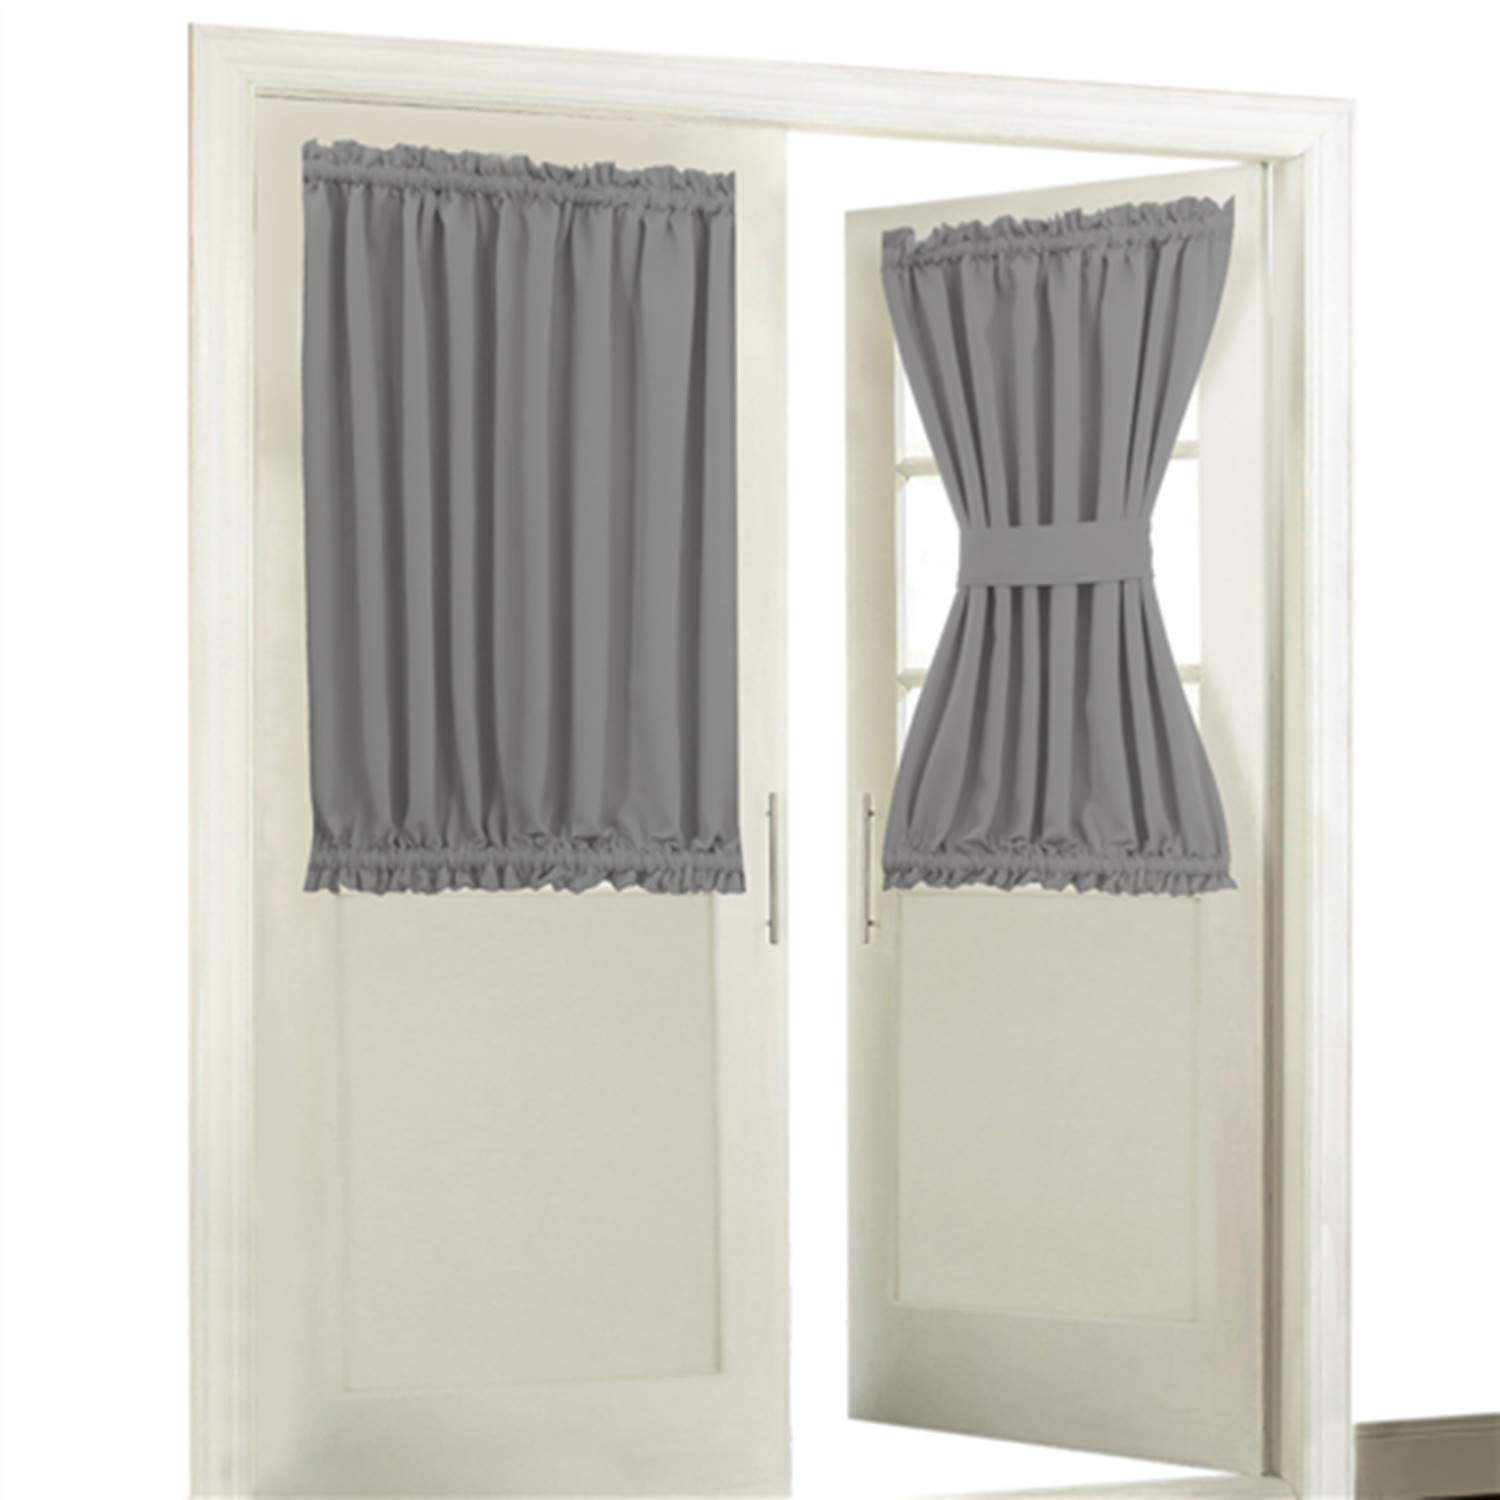 Back Door Window Covering.Aquazolax Blackout Rod Pockets Door Window Curtain Back Door Side Panels For Privacy 54w X 40l Blackout Window Treatment Curtains Drapery For French